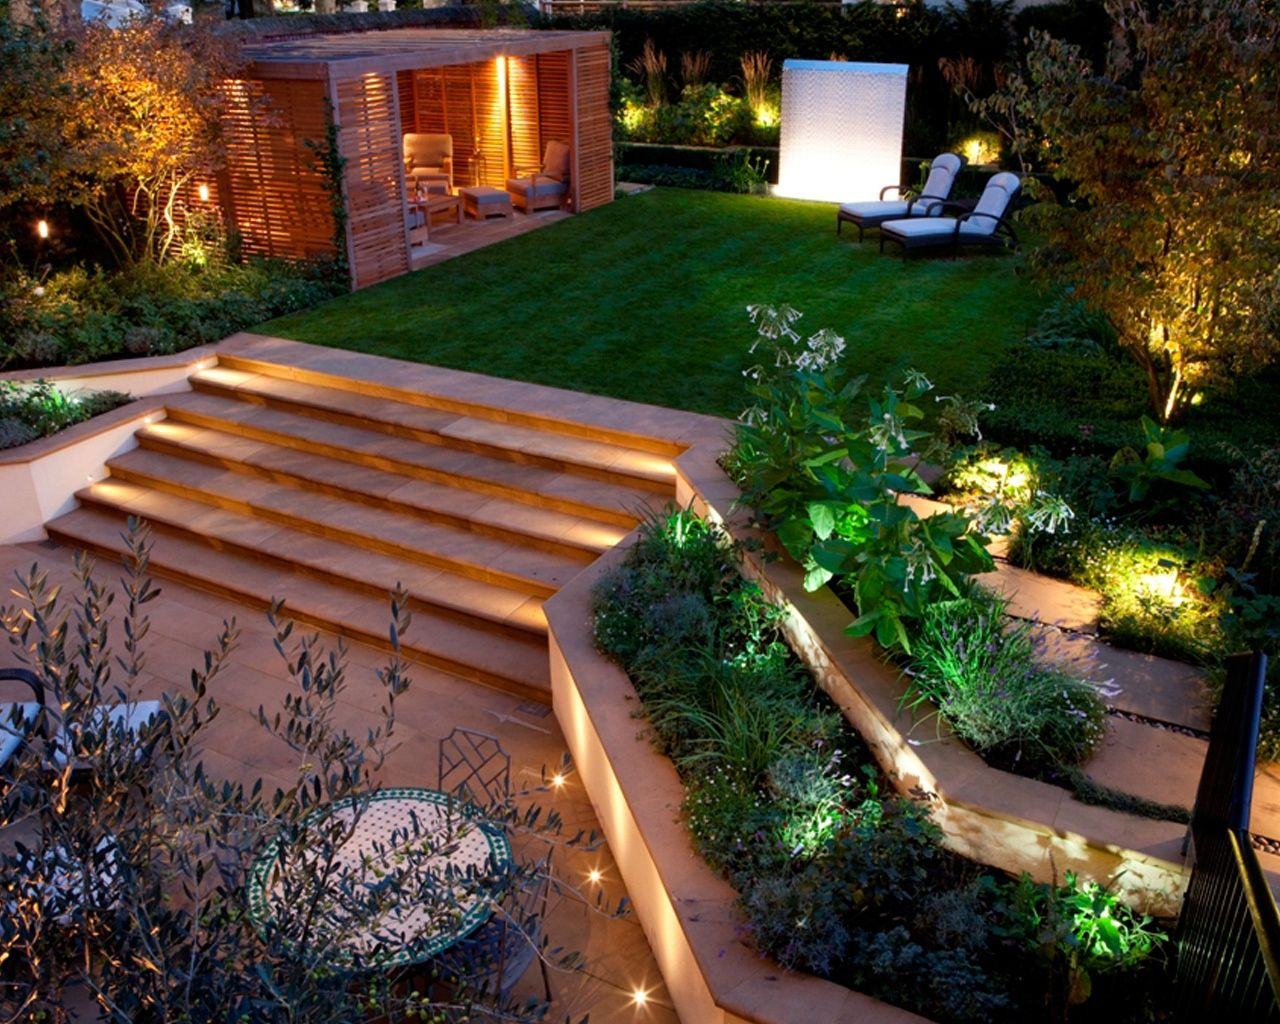 50 Modern Garden Design Ideas to Try in 2017 Contemporary garden